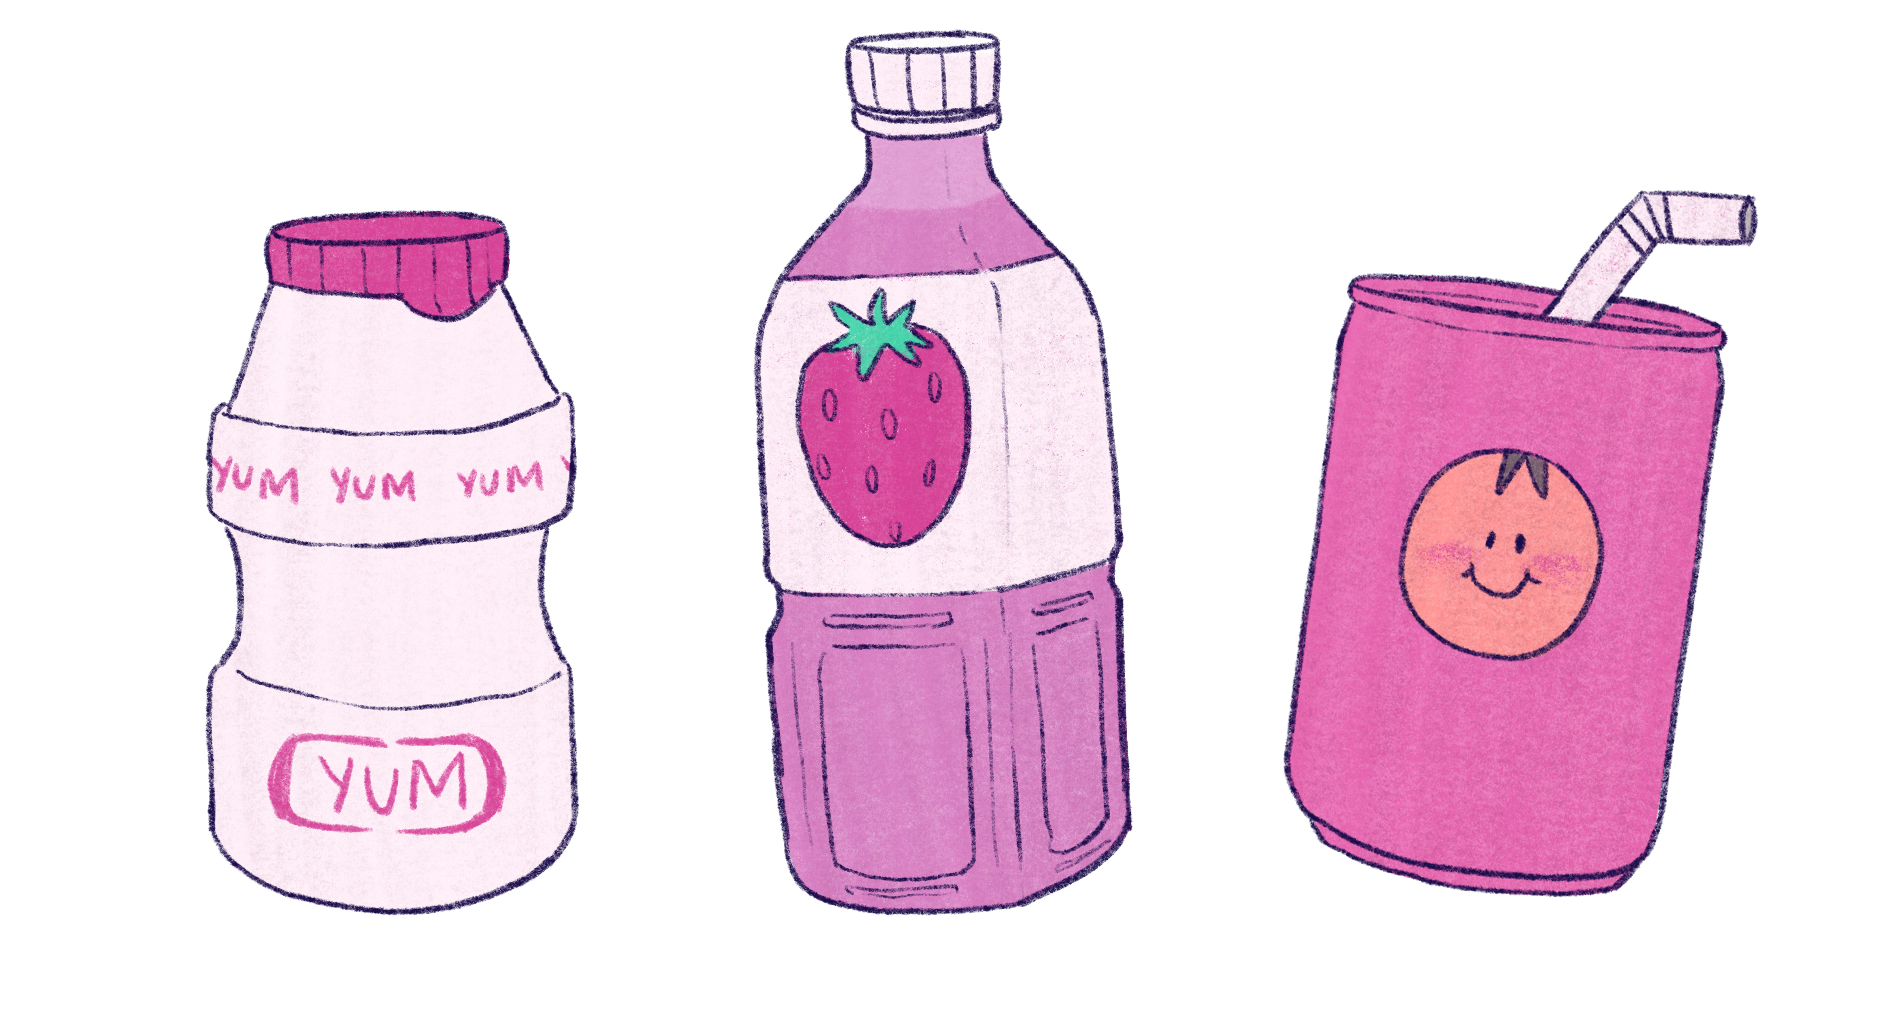 Props - Drinks for Thesis background